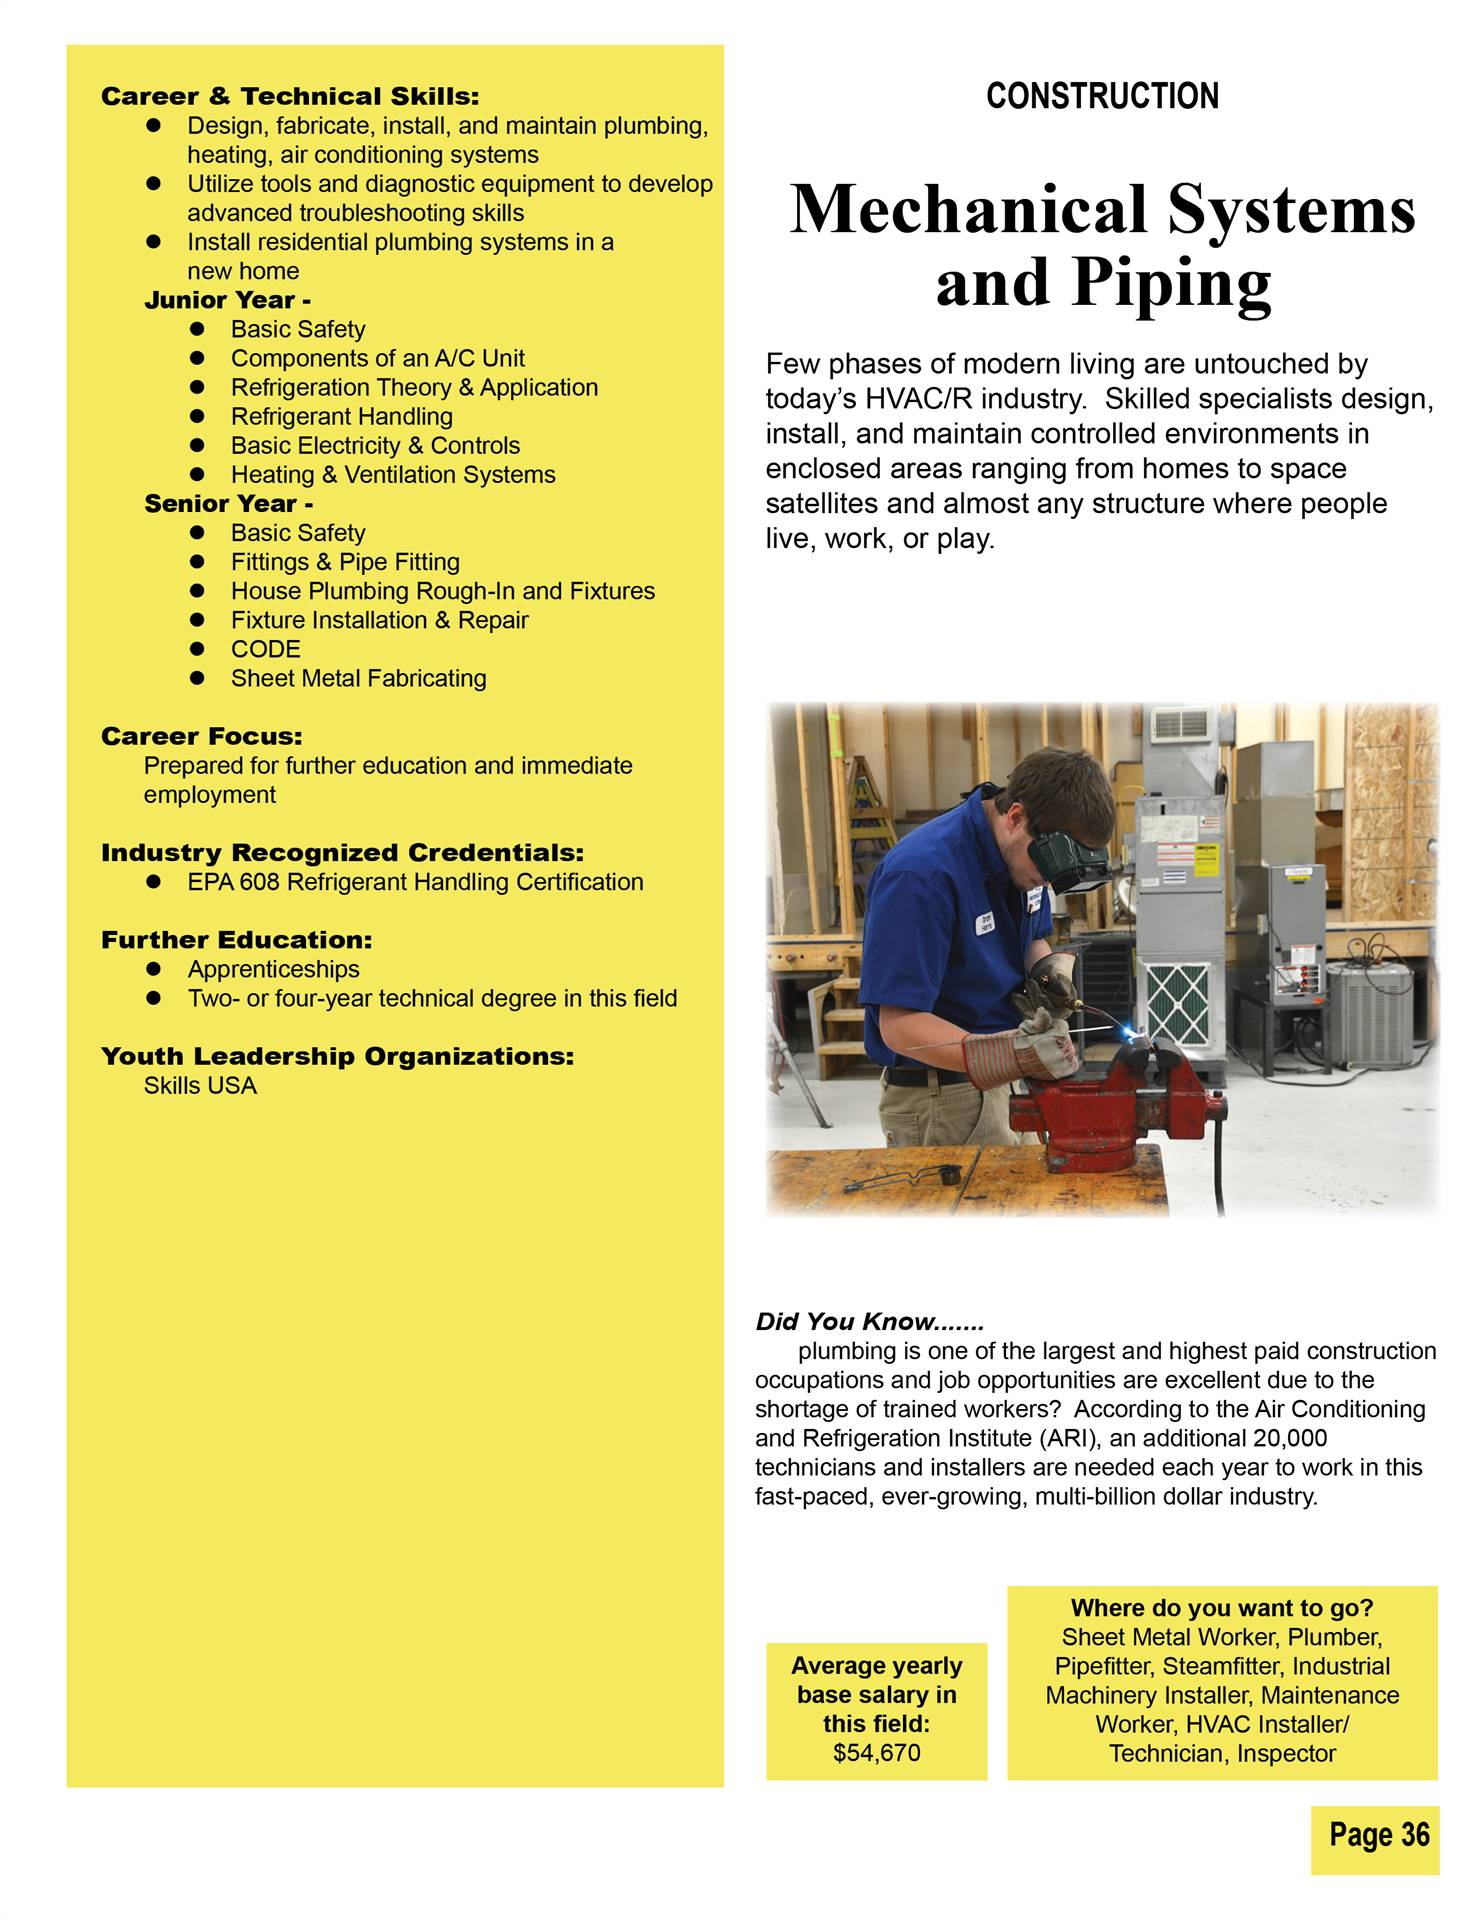 Mechanical Systems and Piping